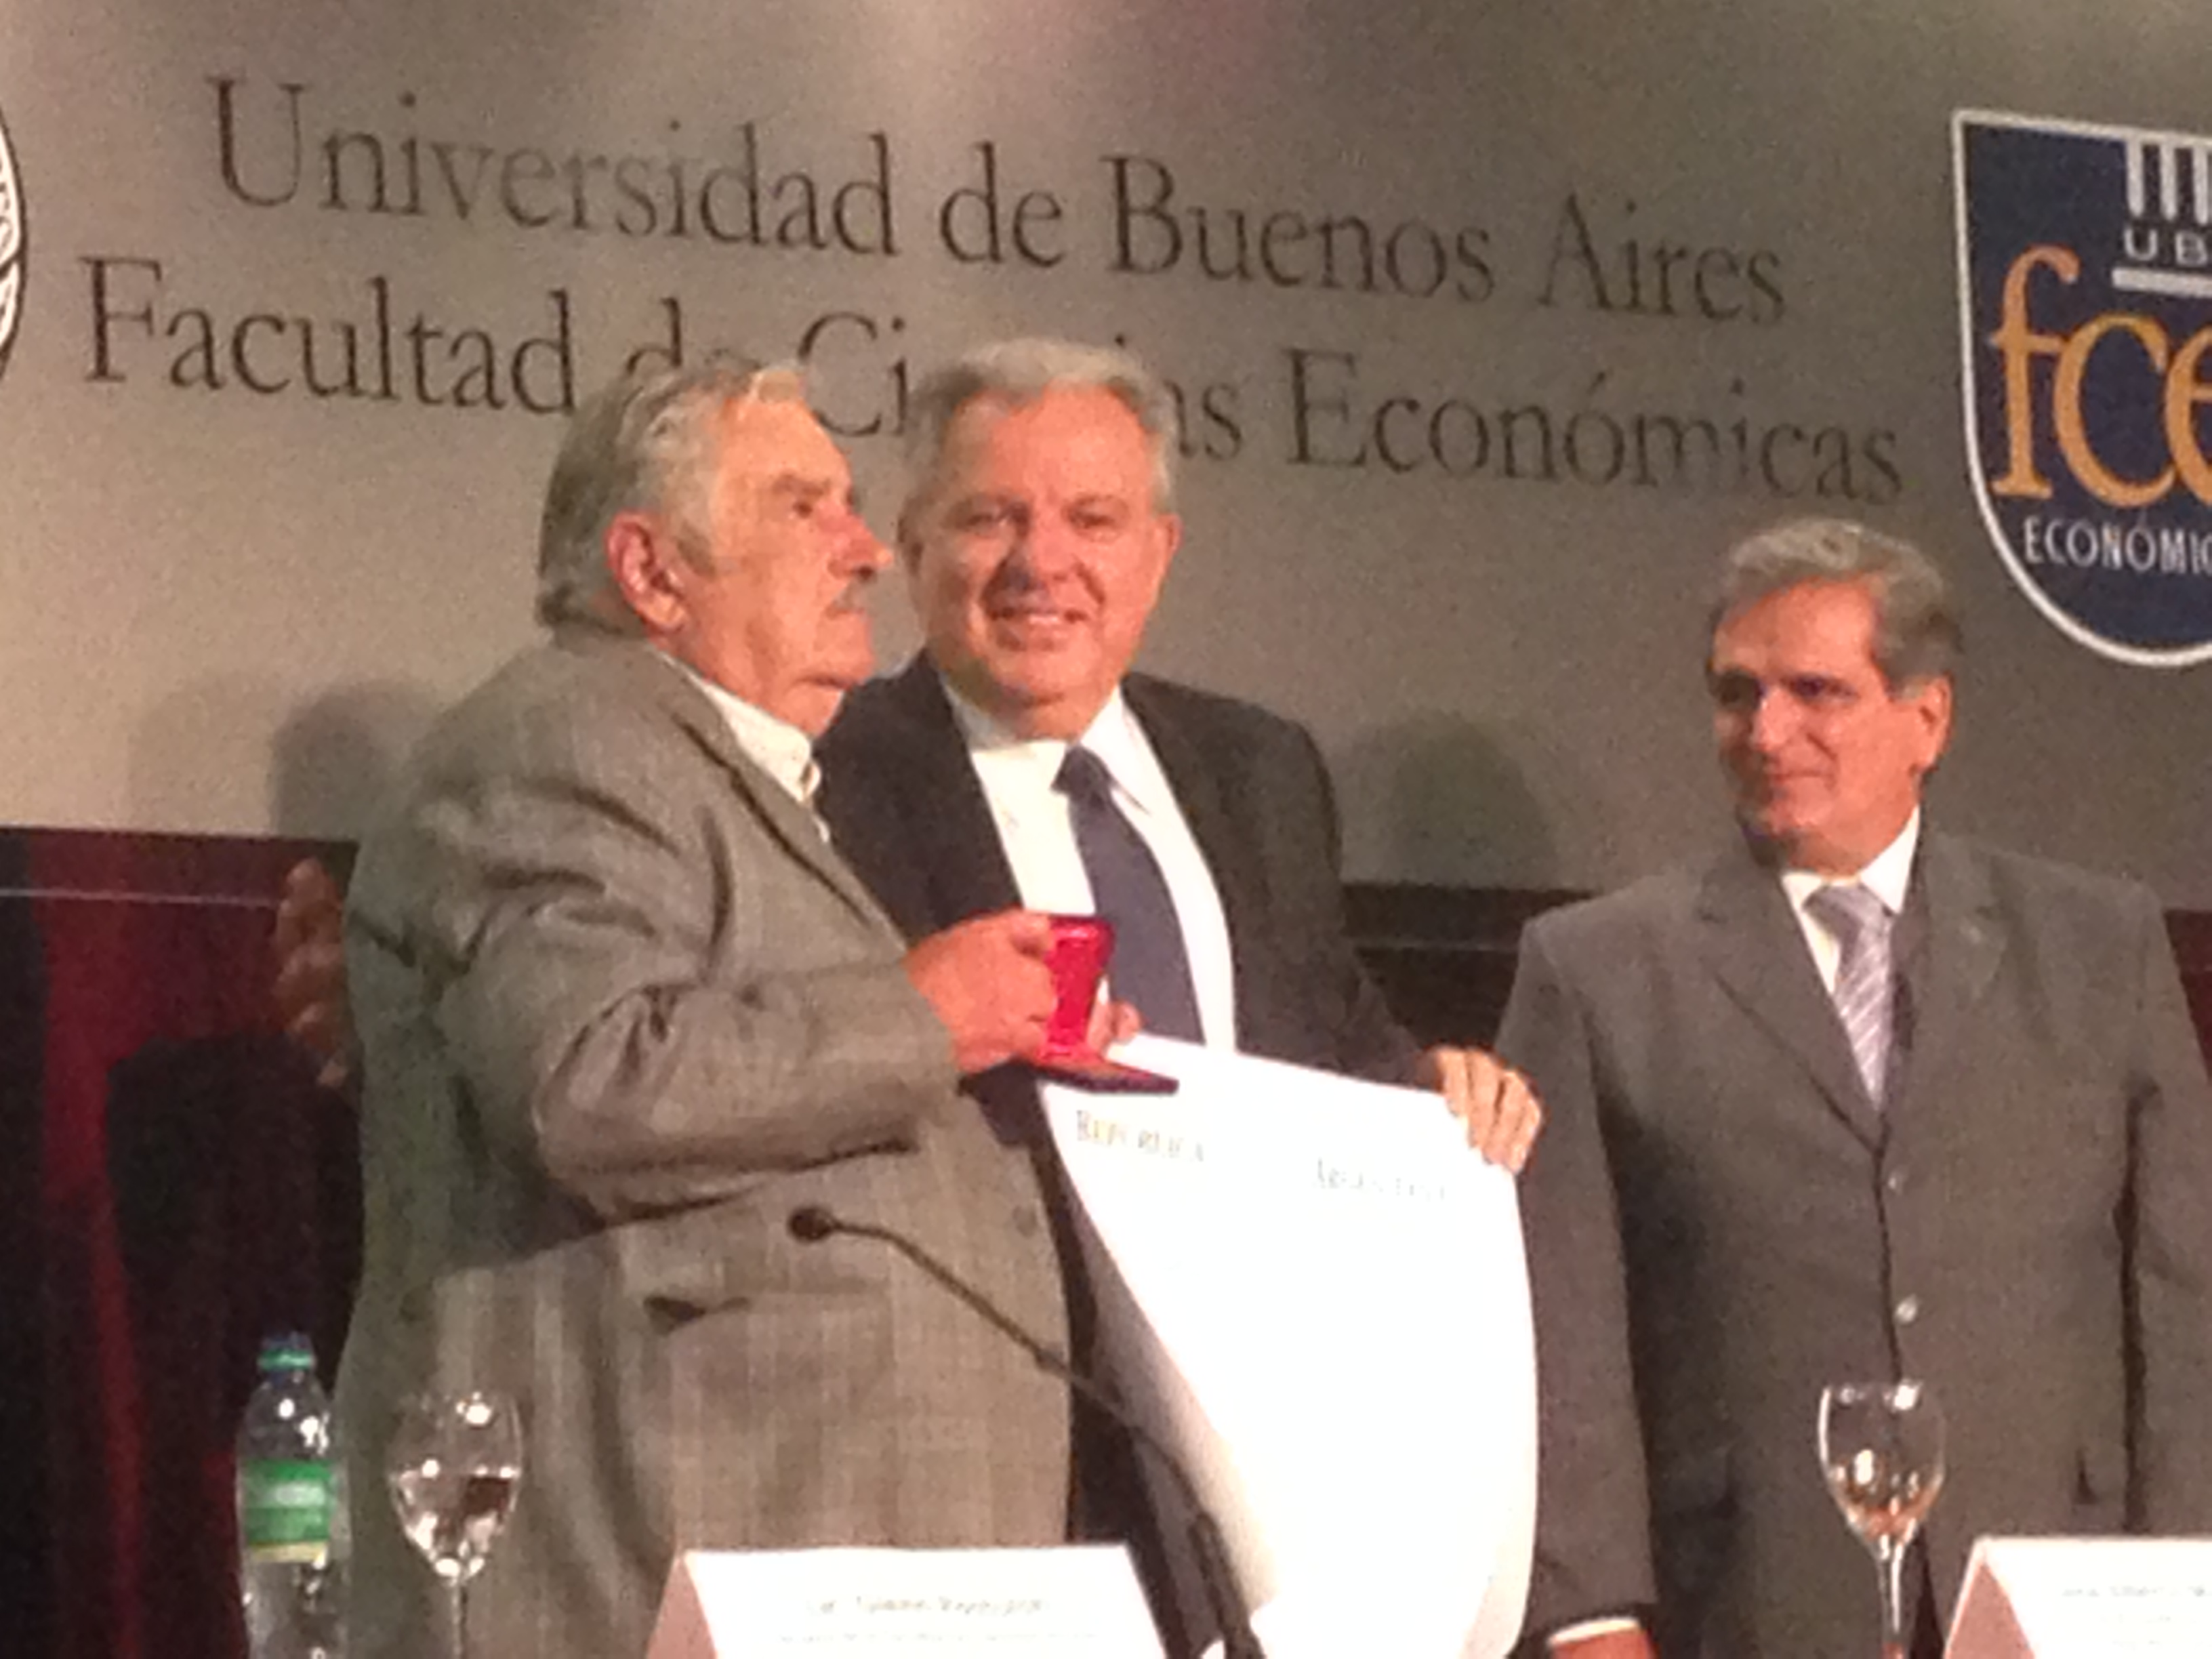 Former Uruguayan president José Mujica recieves award at School of Economics